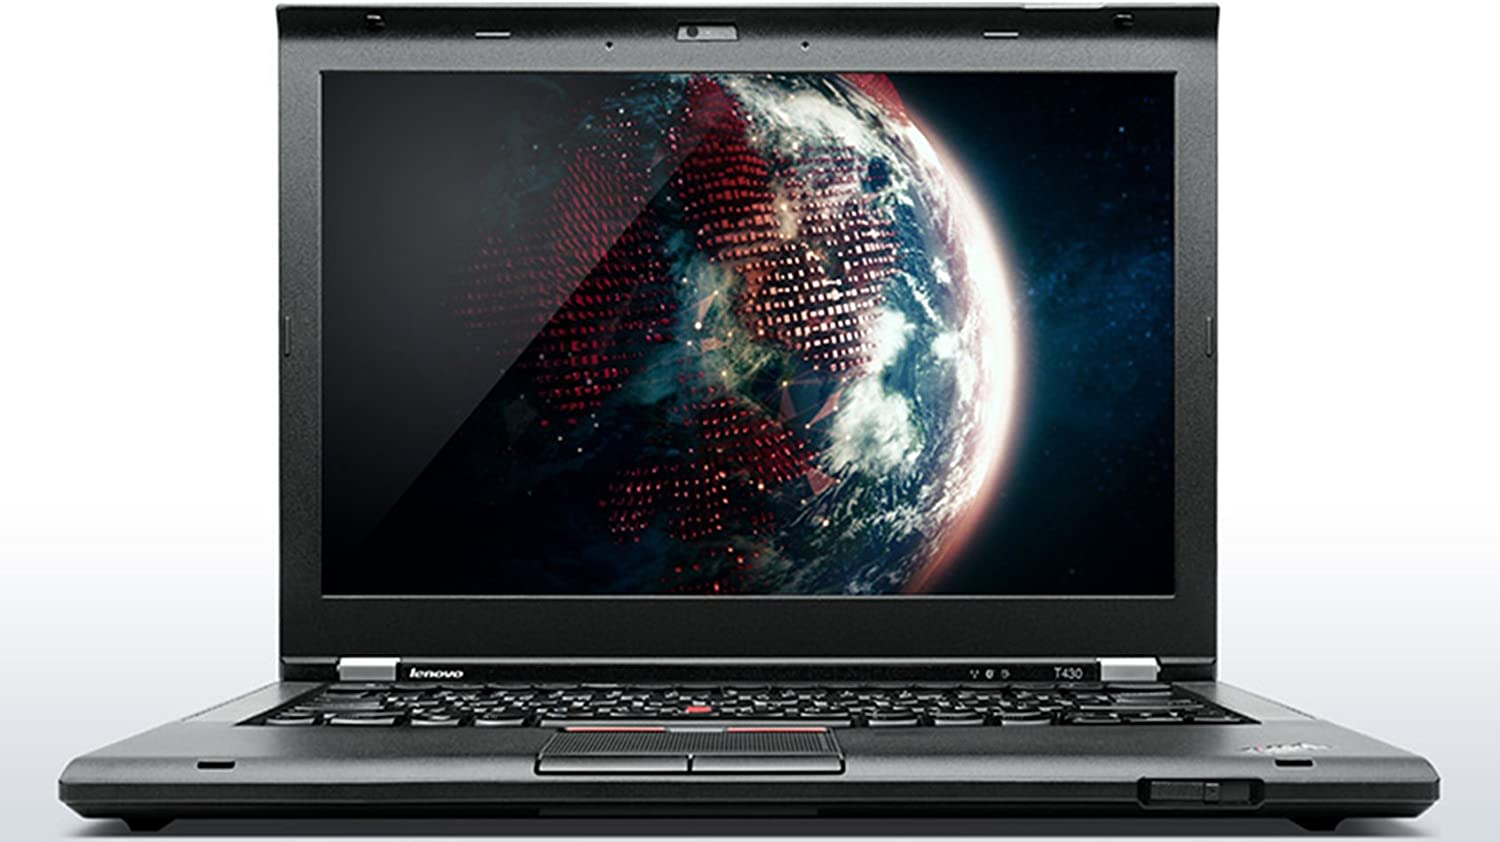 "Lenovo ThinkPad T430 Business Laptop - Windows 10 Pro - Intel i7-3520M, 256GB SSD, 16GB RAM, 14.0"" WXGA (1366x768) Anti-Glare Display, ThinkLight Keyboard Light, DVD/CD-RW, Fingerprint Reader"